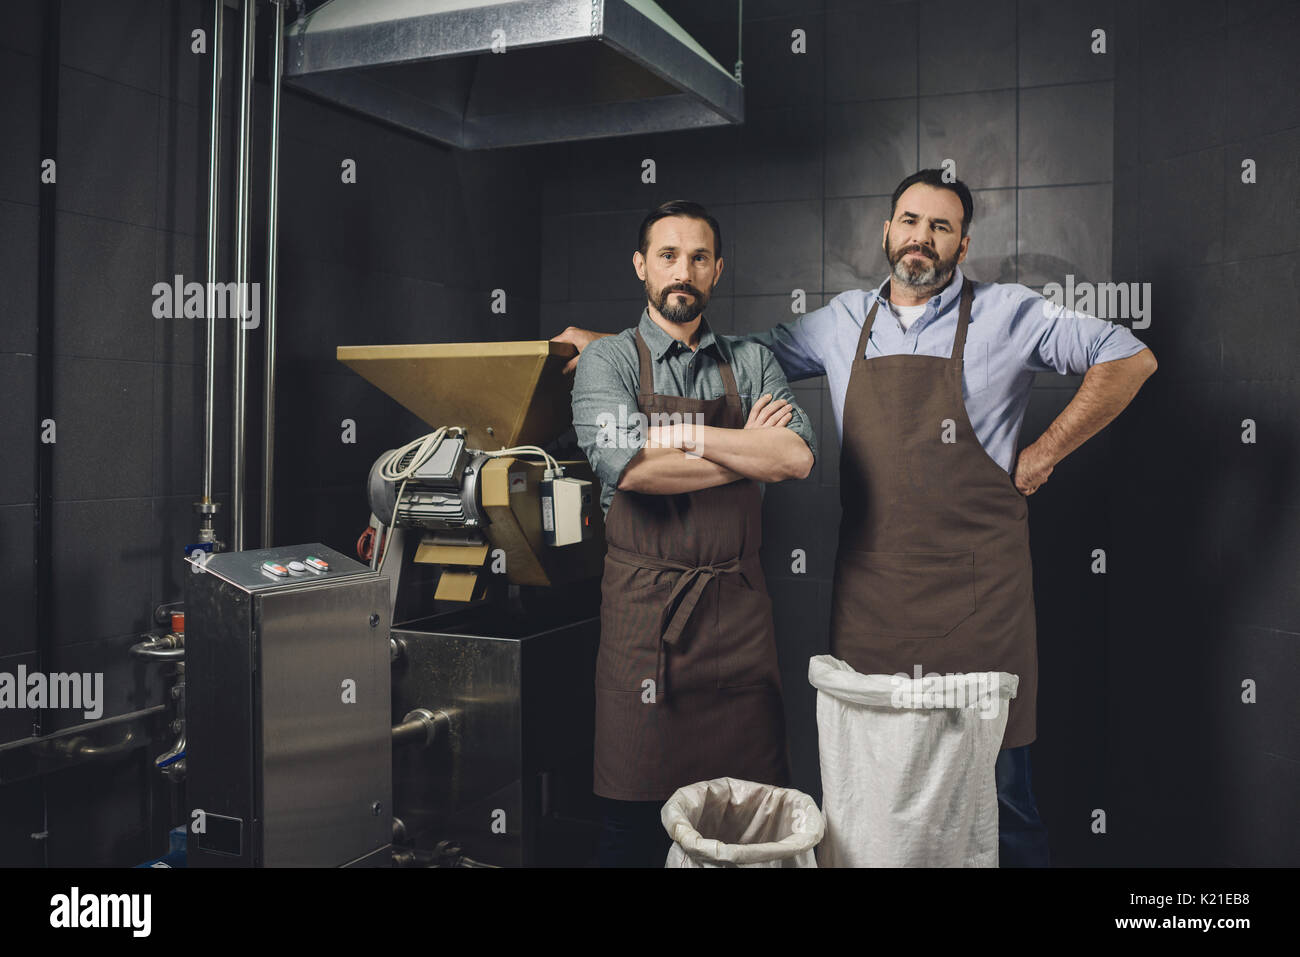 Male workers in aprons standing near equipment and looking at camera at brewery - Stock Image